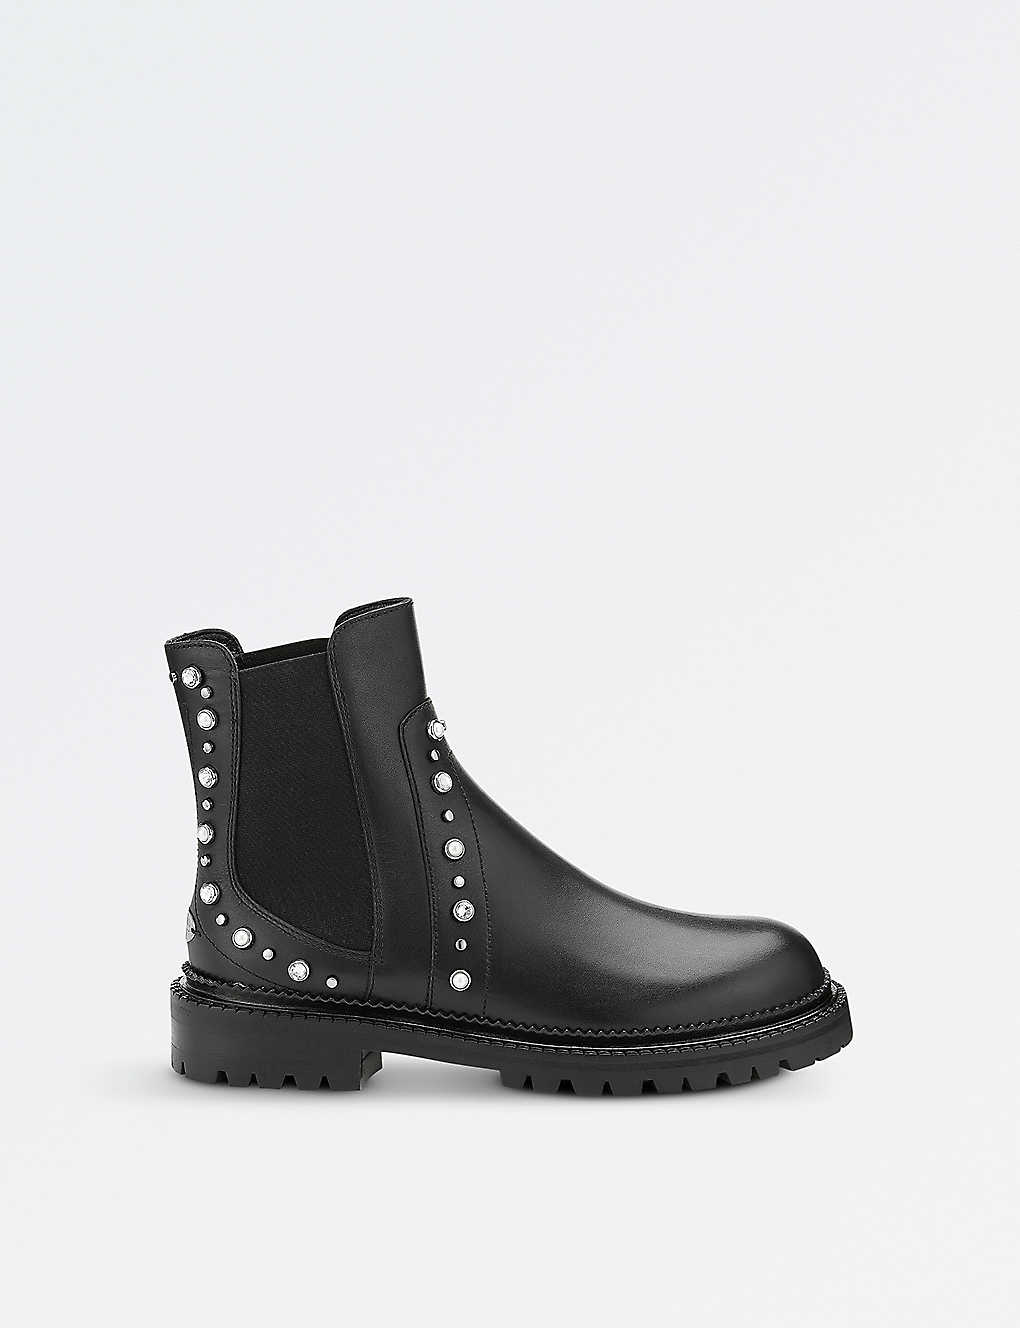 5688b75e51dc9 JIMMY CHOO - Burrow flat leather biker boots | Selfridges.com